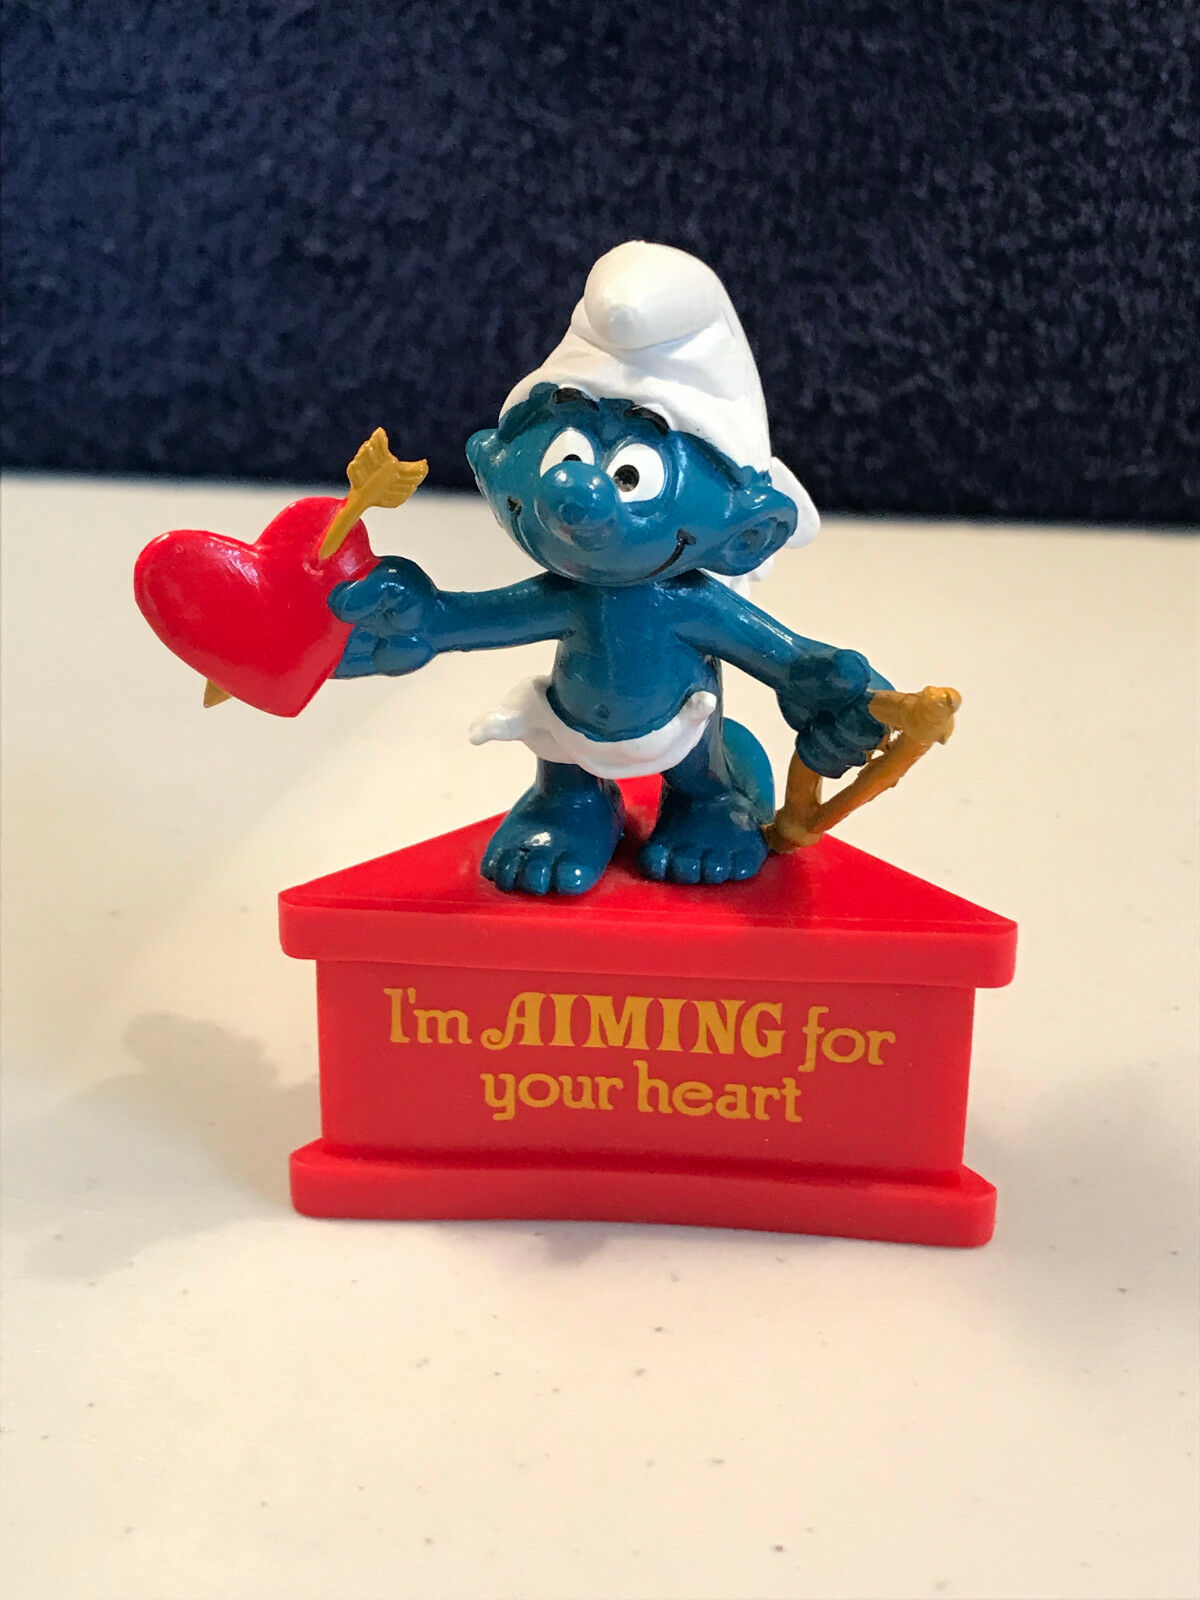 Smurf A Gram Aiming For Your Heart Cupid Vintage PVC Figure Valentines Figurine